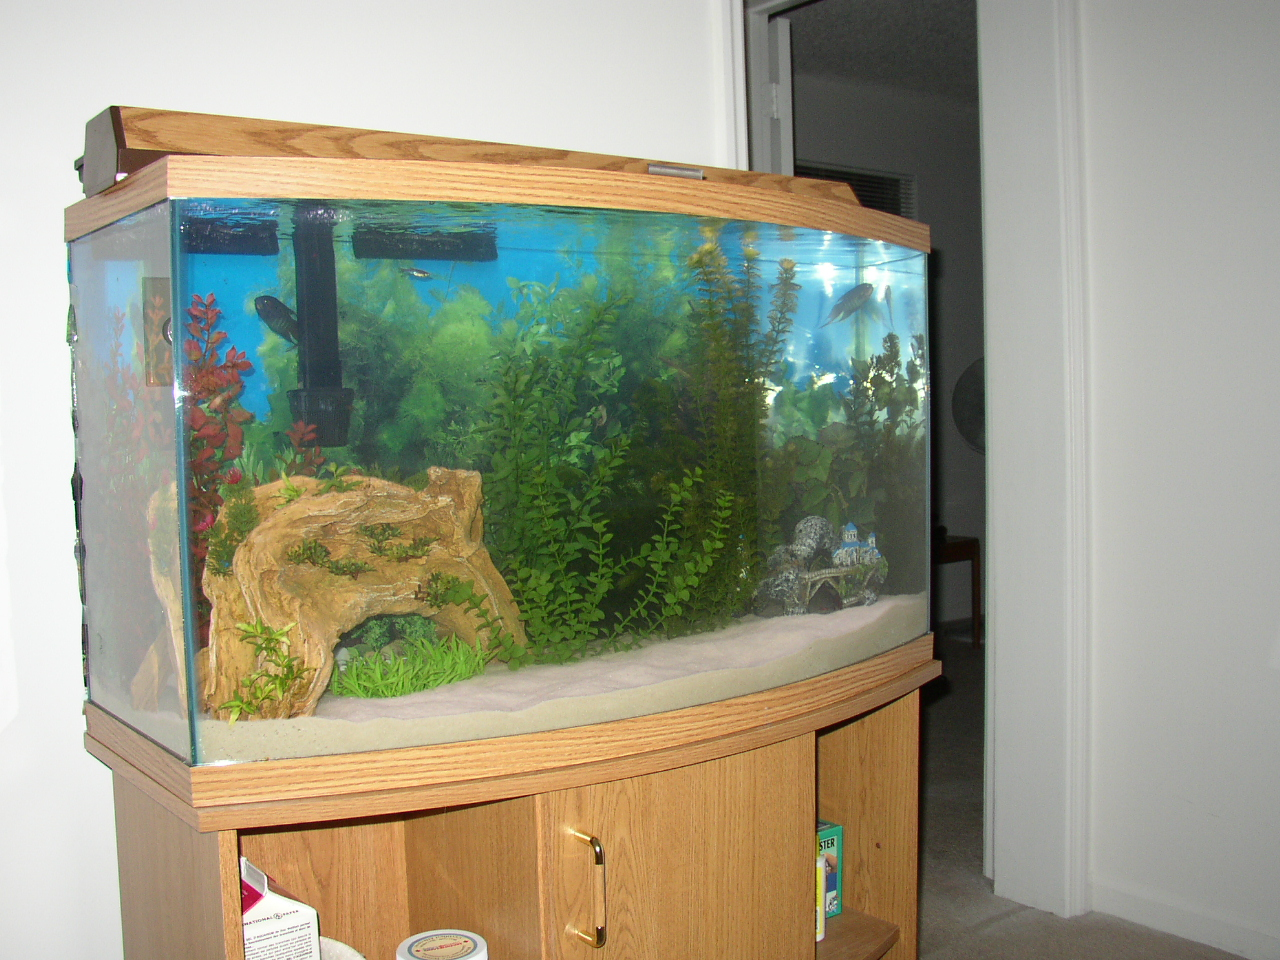 Click image for larger version  Name:fish tank.JPG Views:46 Size:802.5 KB ID:660